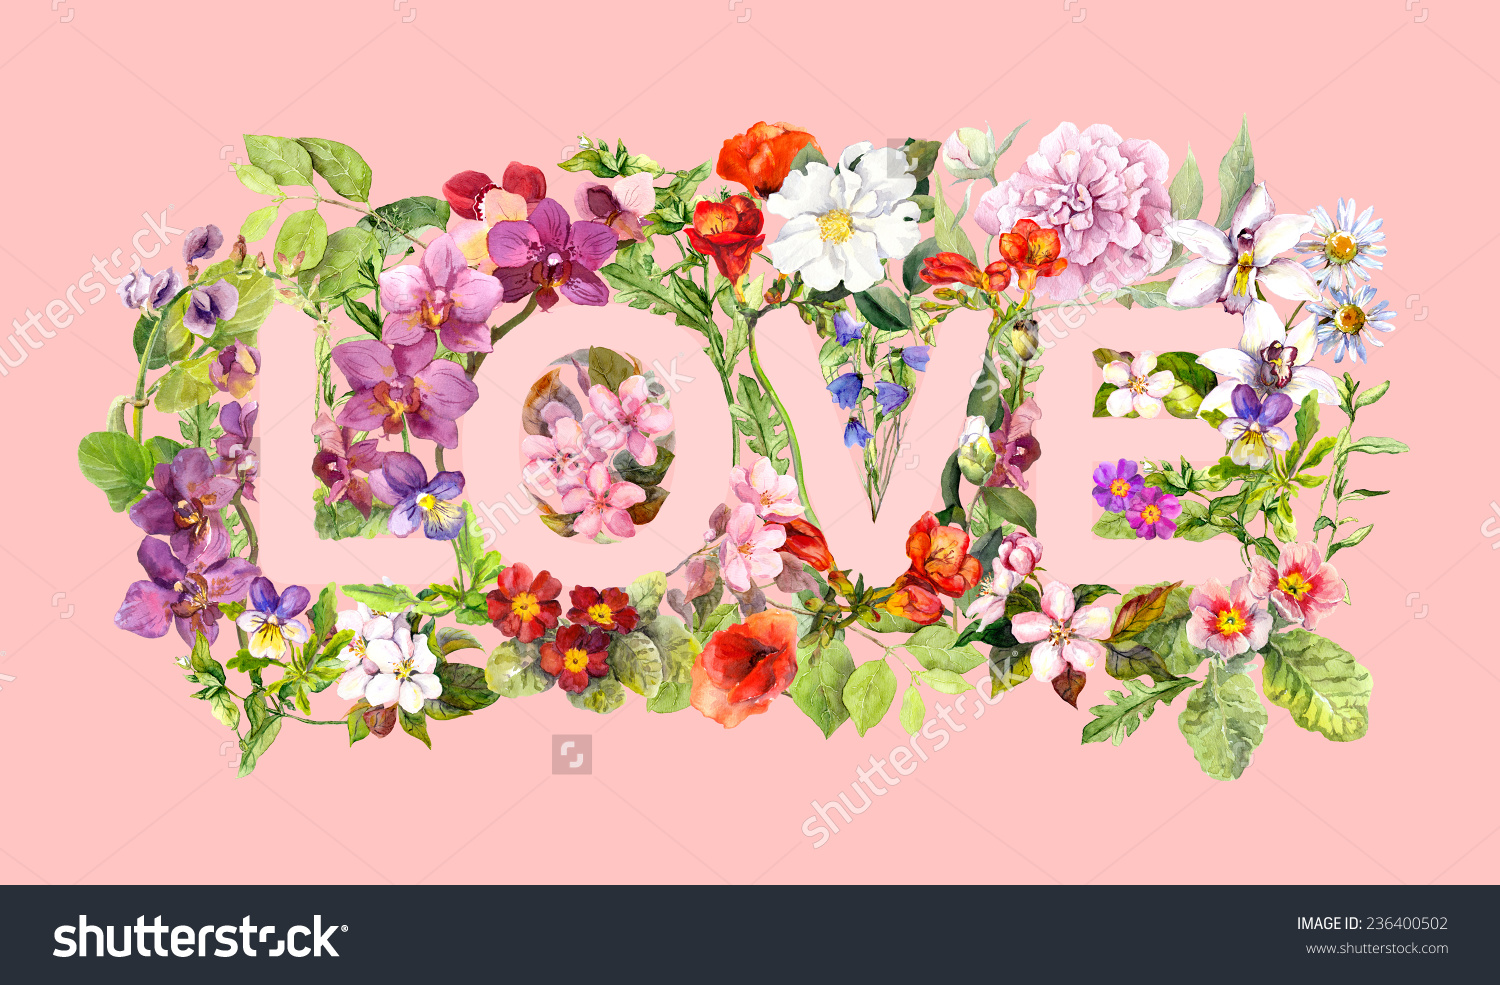 Letter Love Many Flowers Leaves Meadow Stock Illustration.